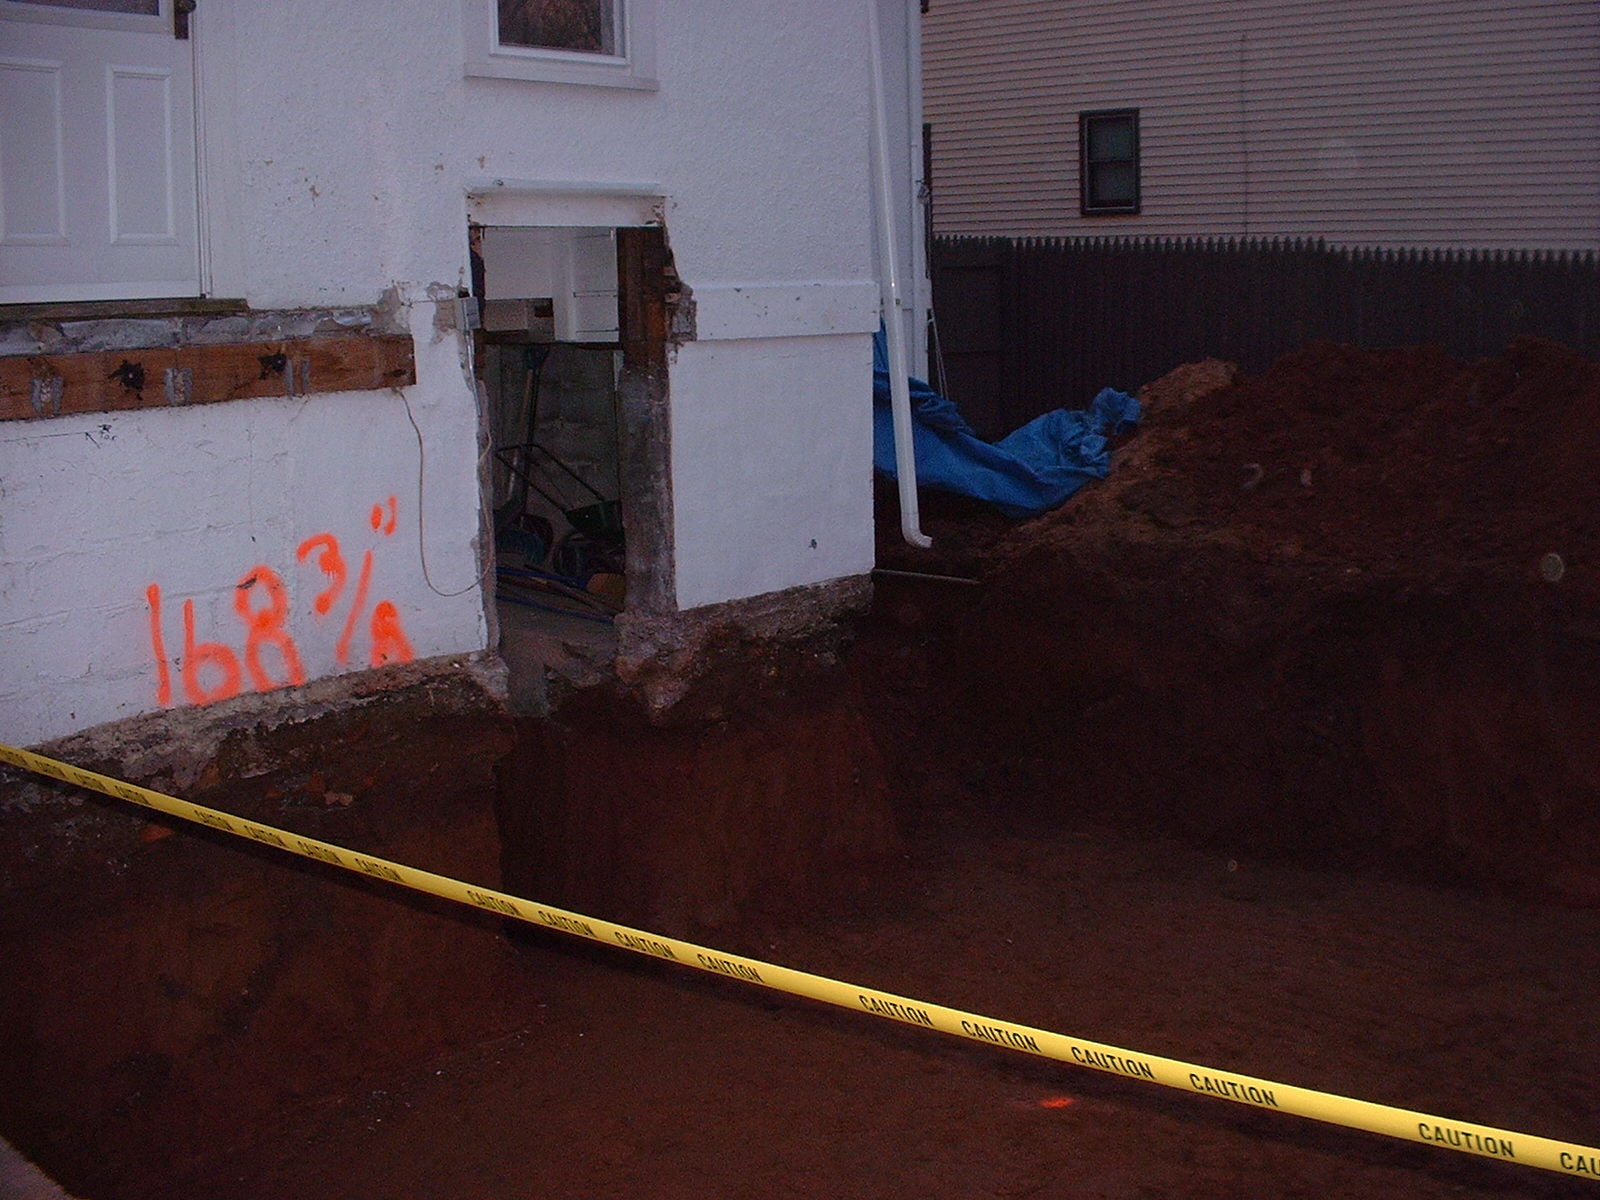 A better picture of the hole. The orange marks you see are the height marks we used to stay level as we dug.